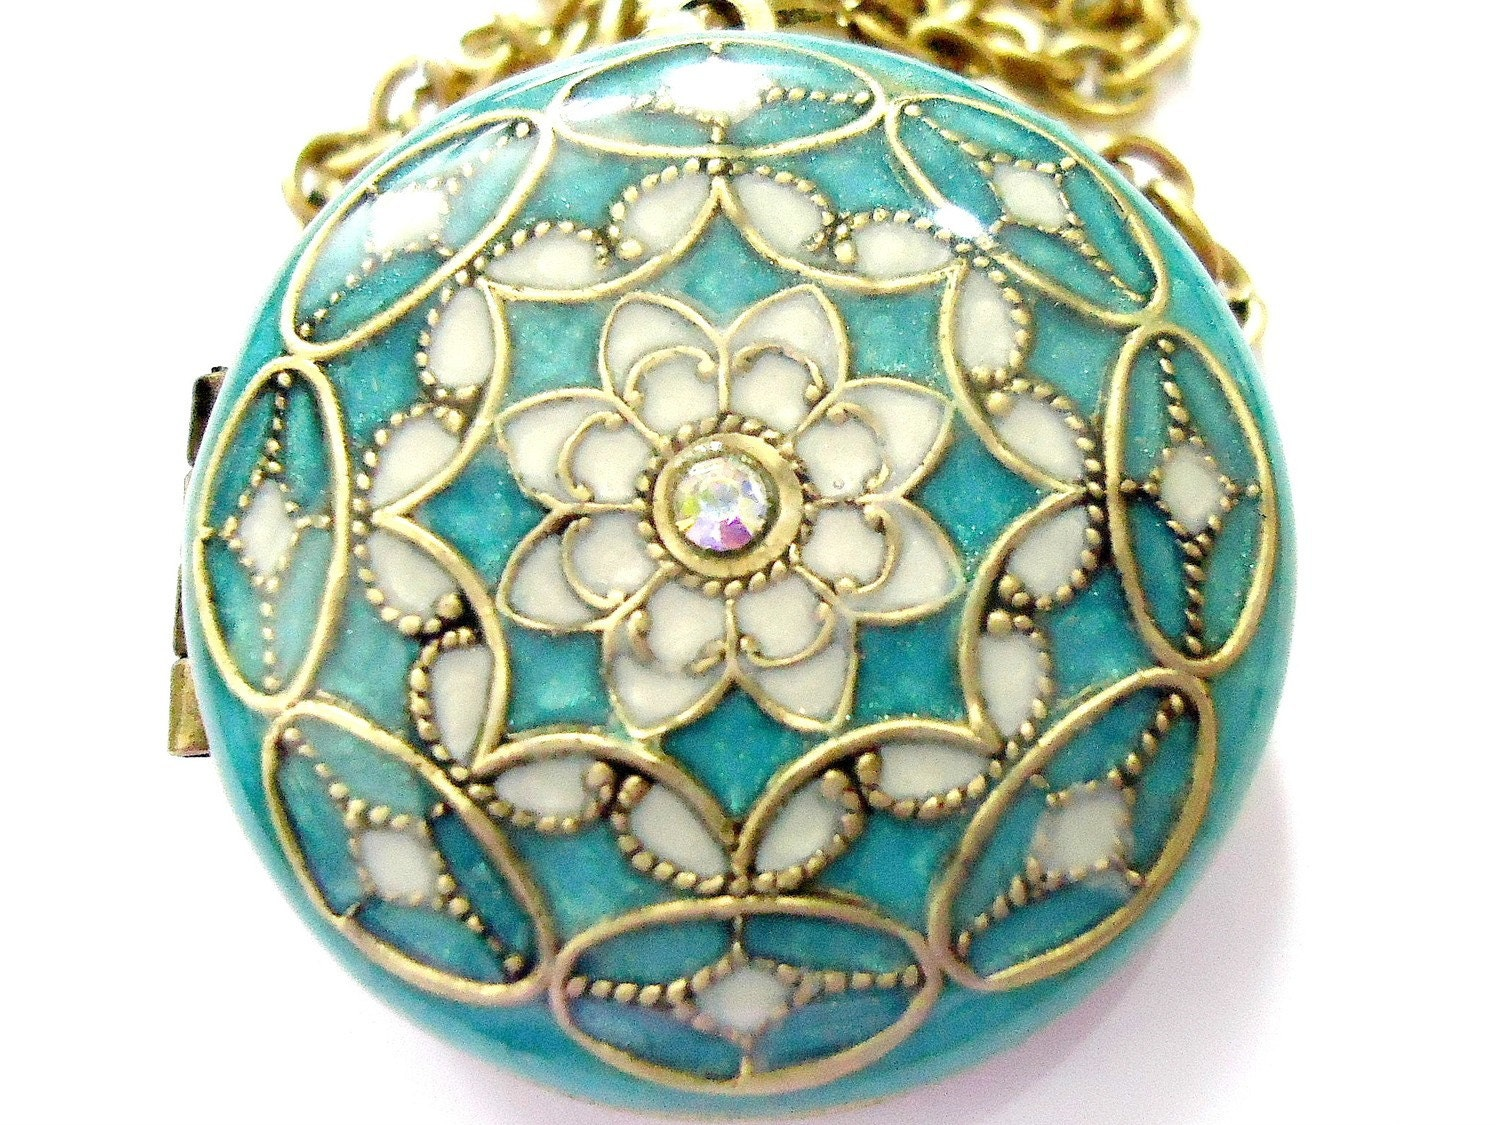 Aqua, Filigree- Vintage, Brass, Swarovski Crystal Locket Necklace